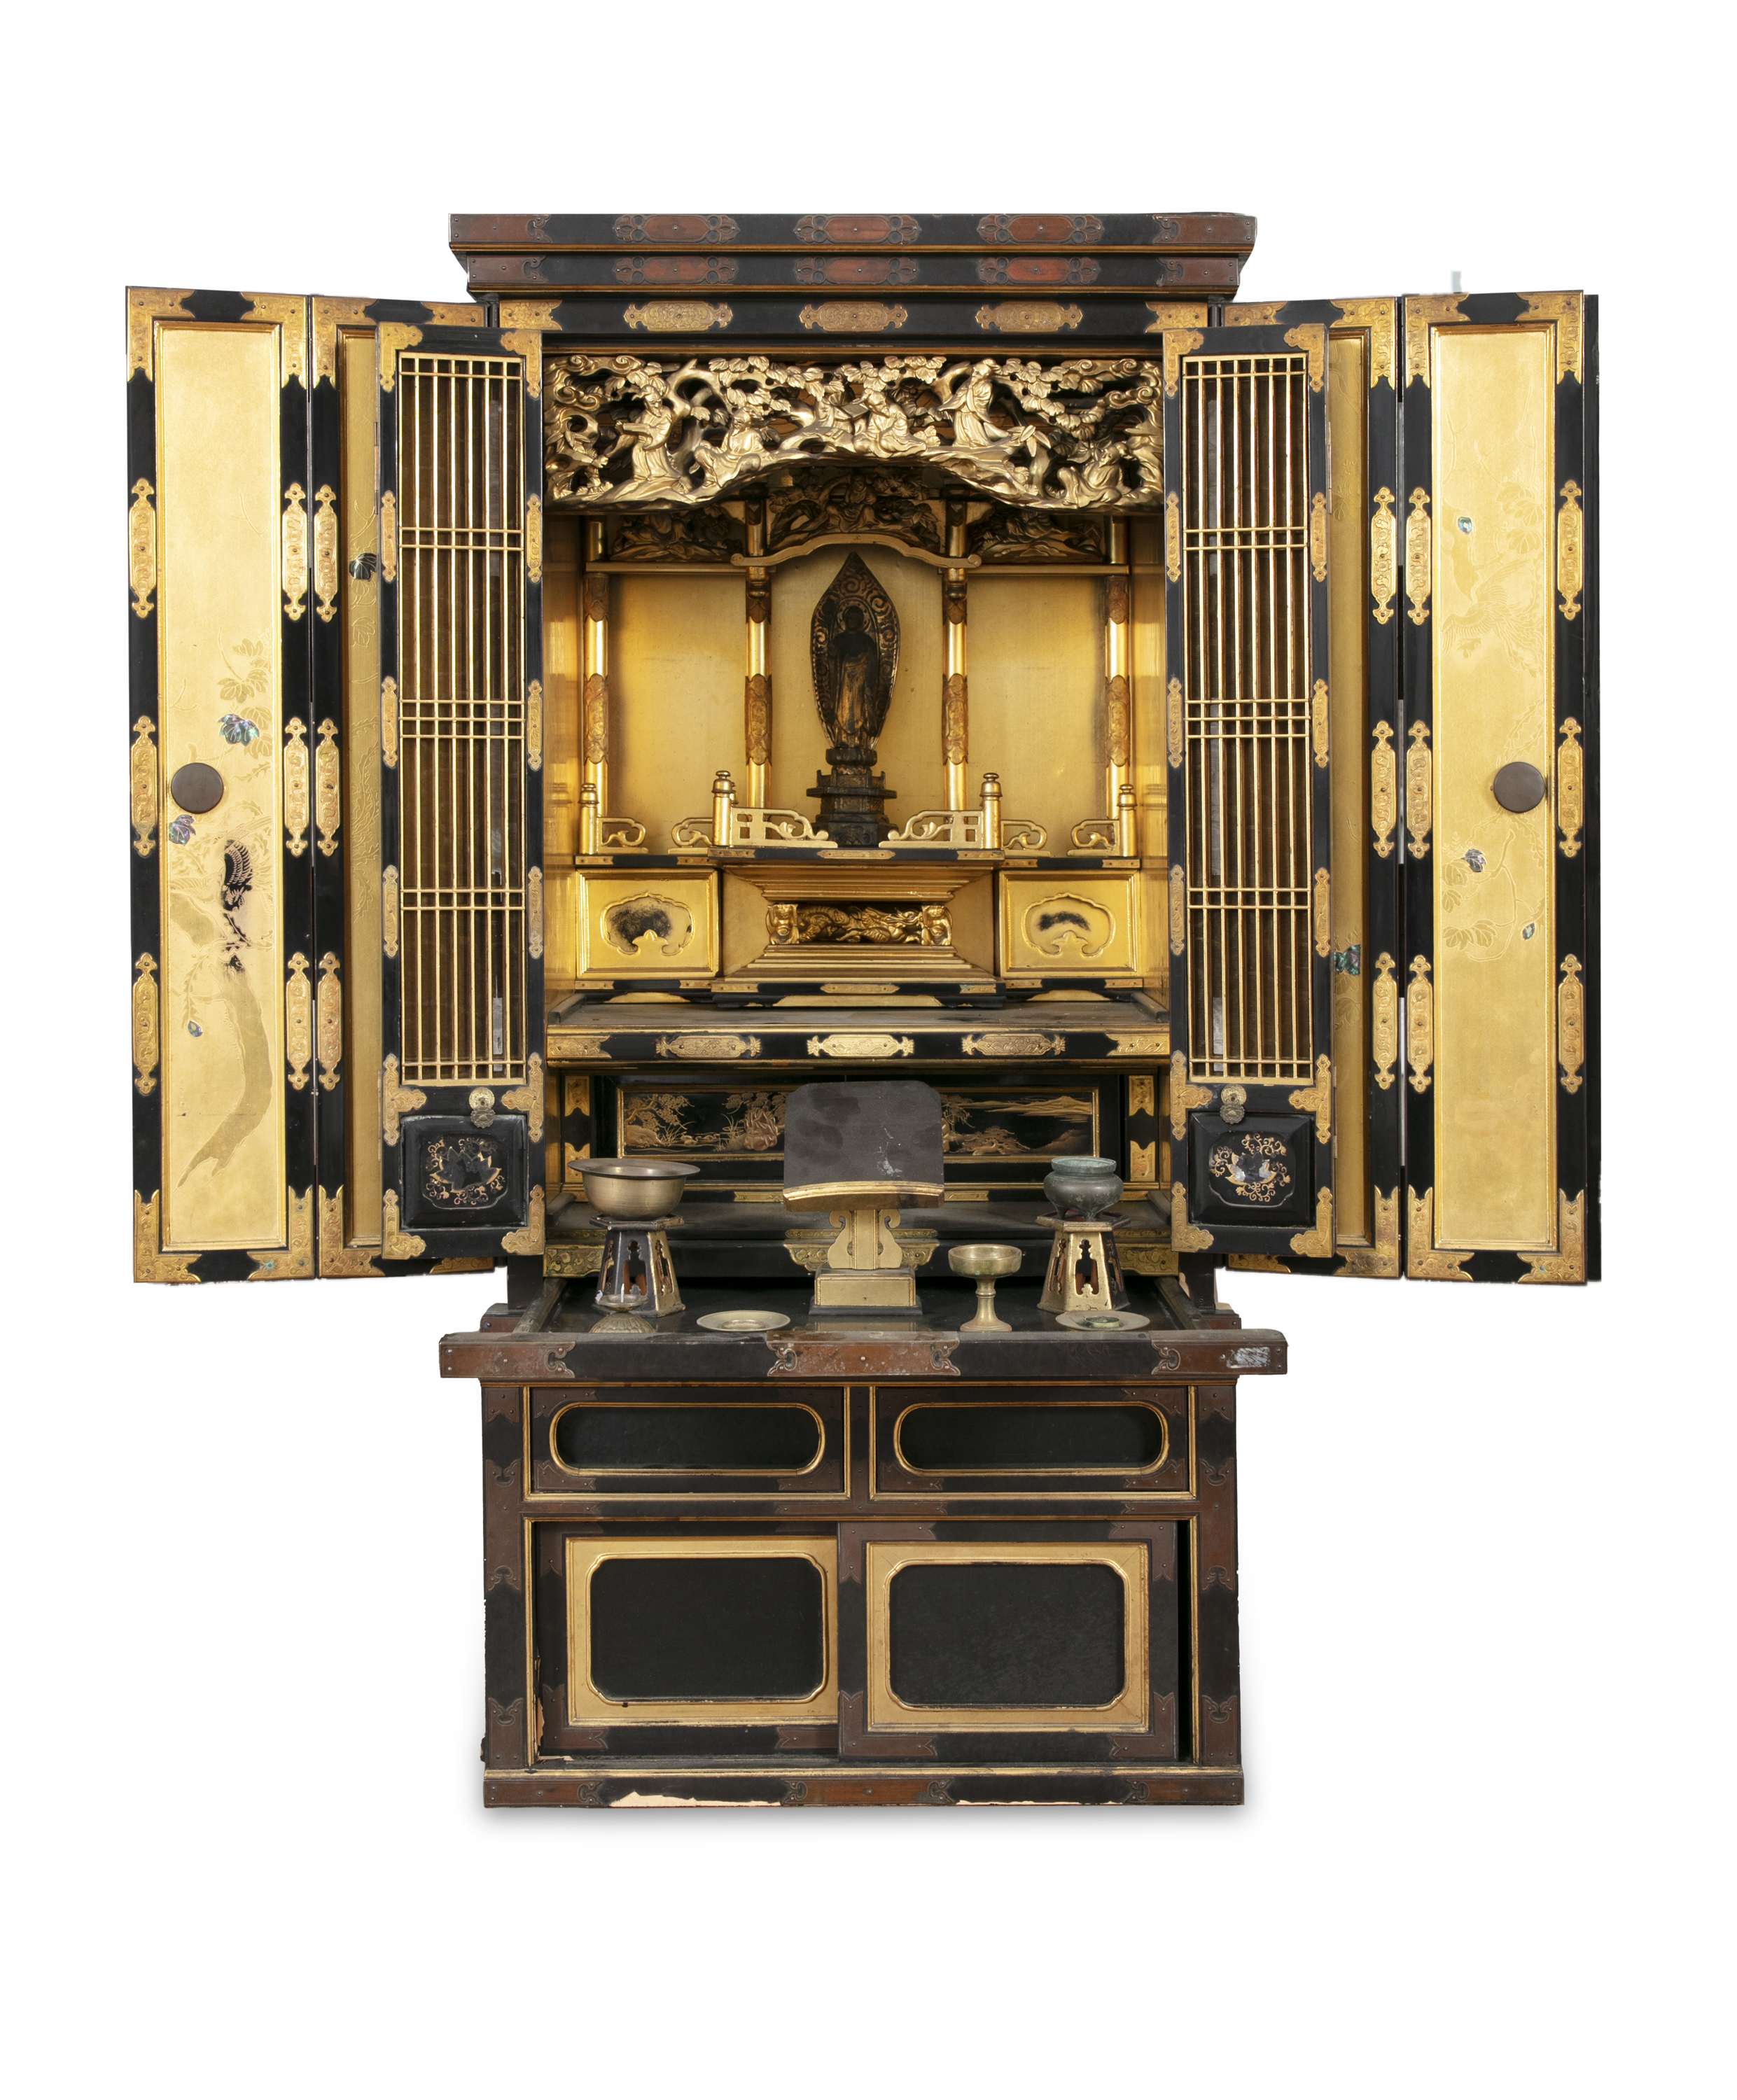 A GILT AND BLACK LACQUERED WOODEN ALTAR, BUTSUDAN Japan, 19th century It is composed of two square